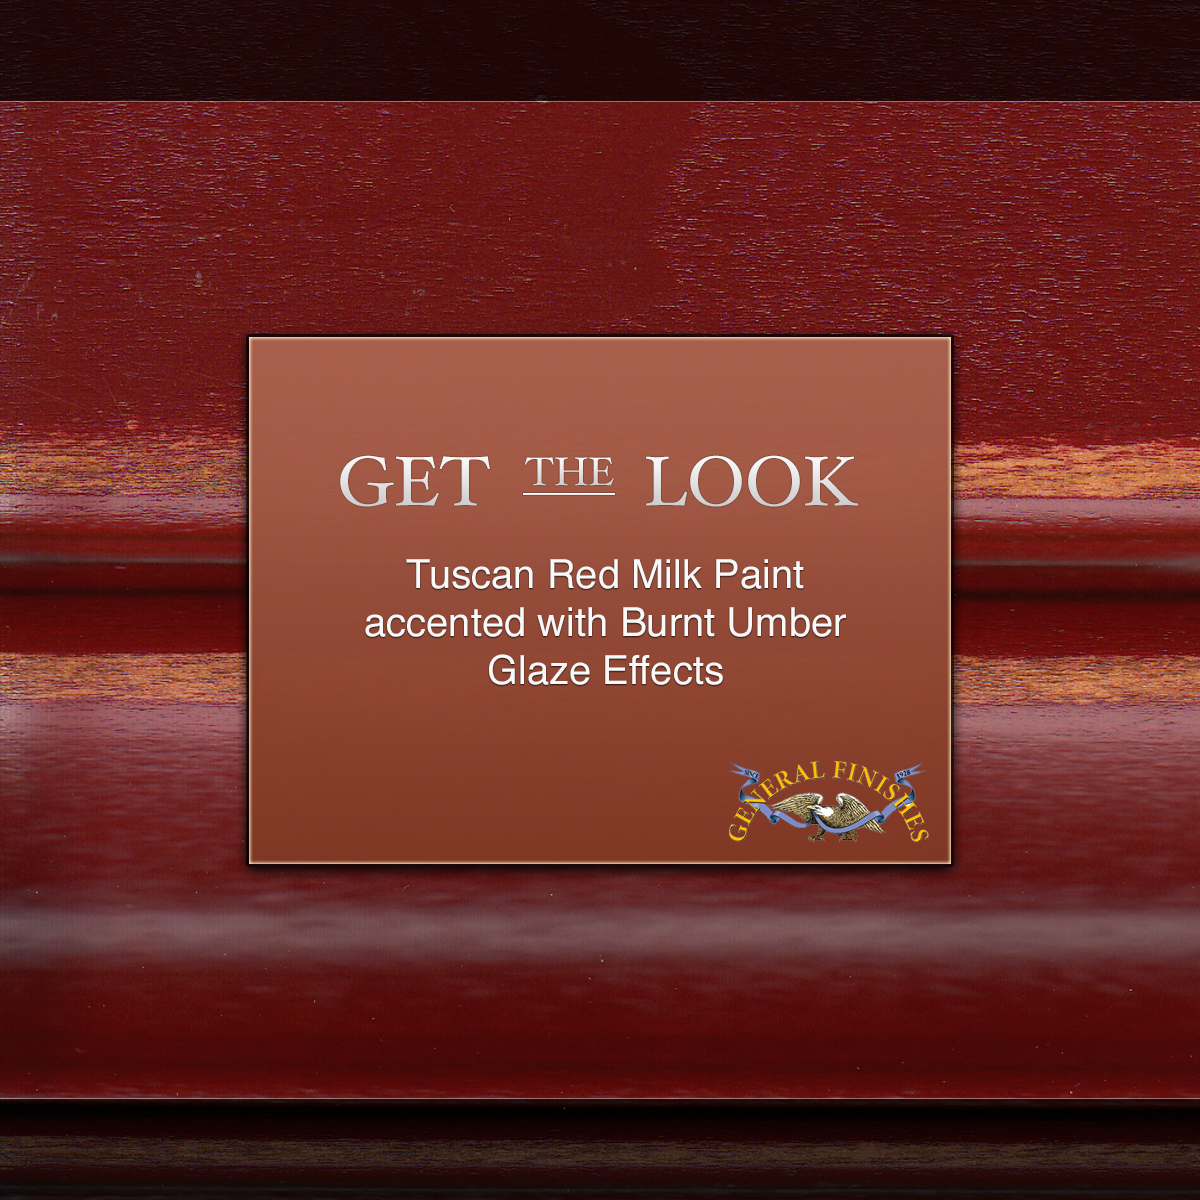 Get The Look Tuscan Red Milk Paint Accented With Burnt